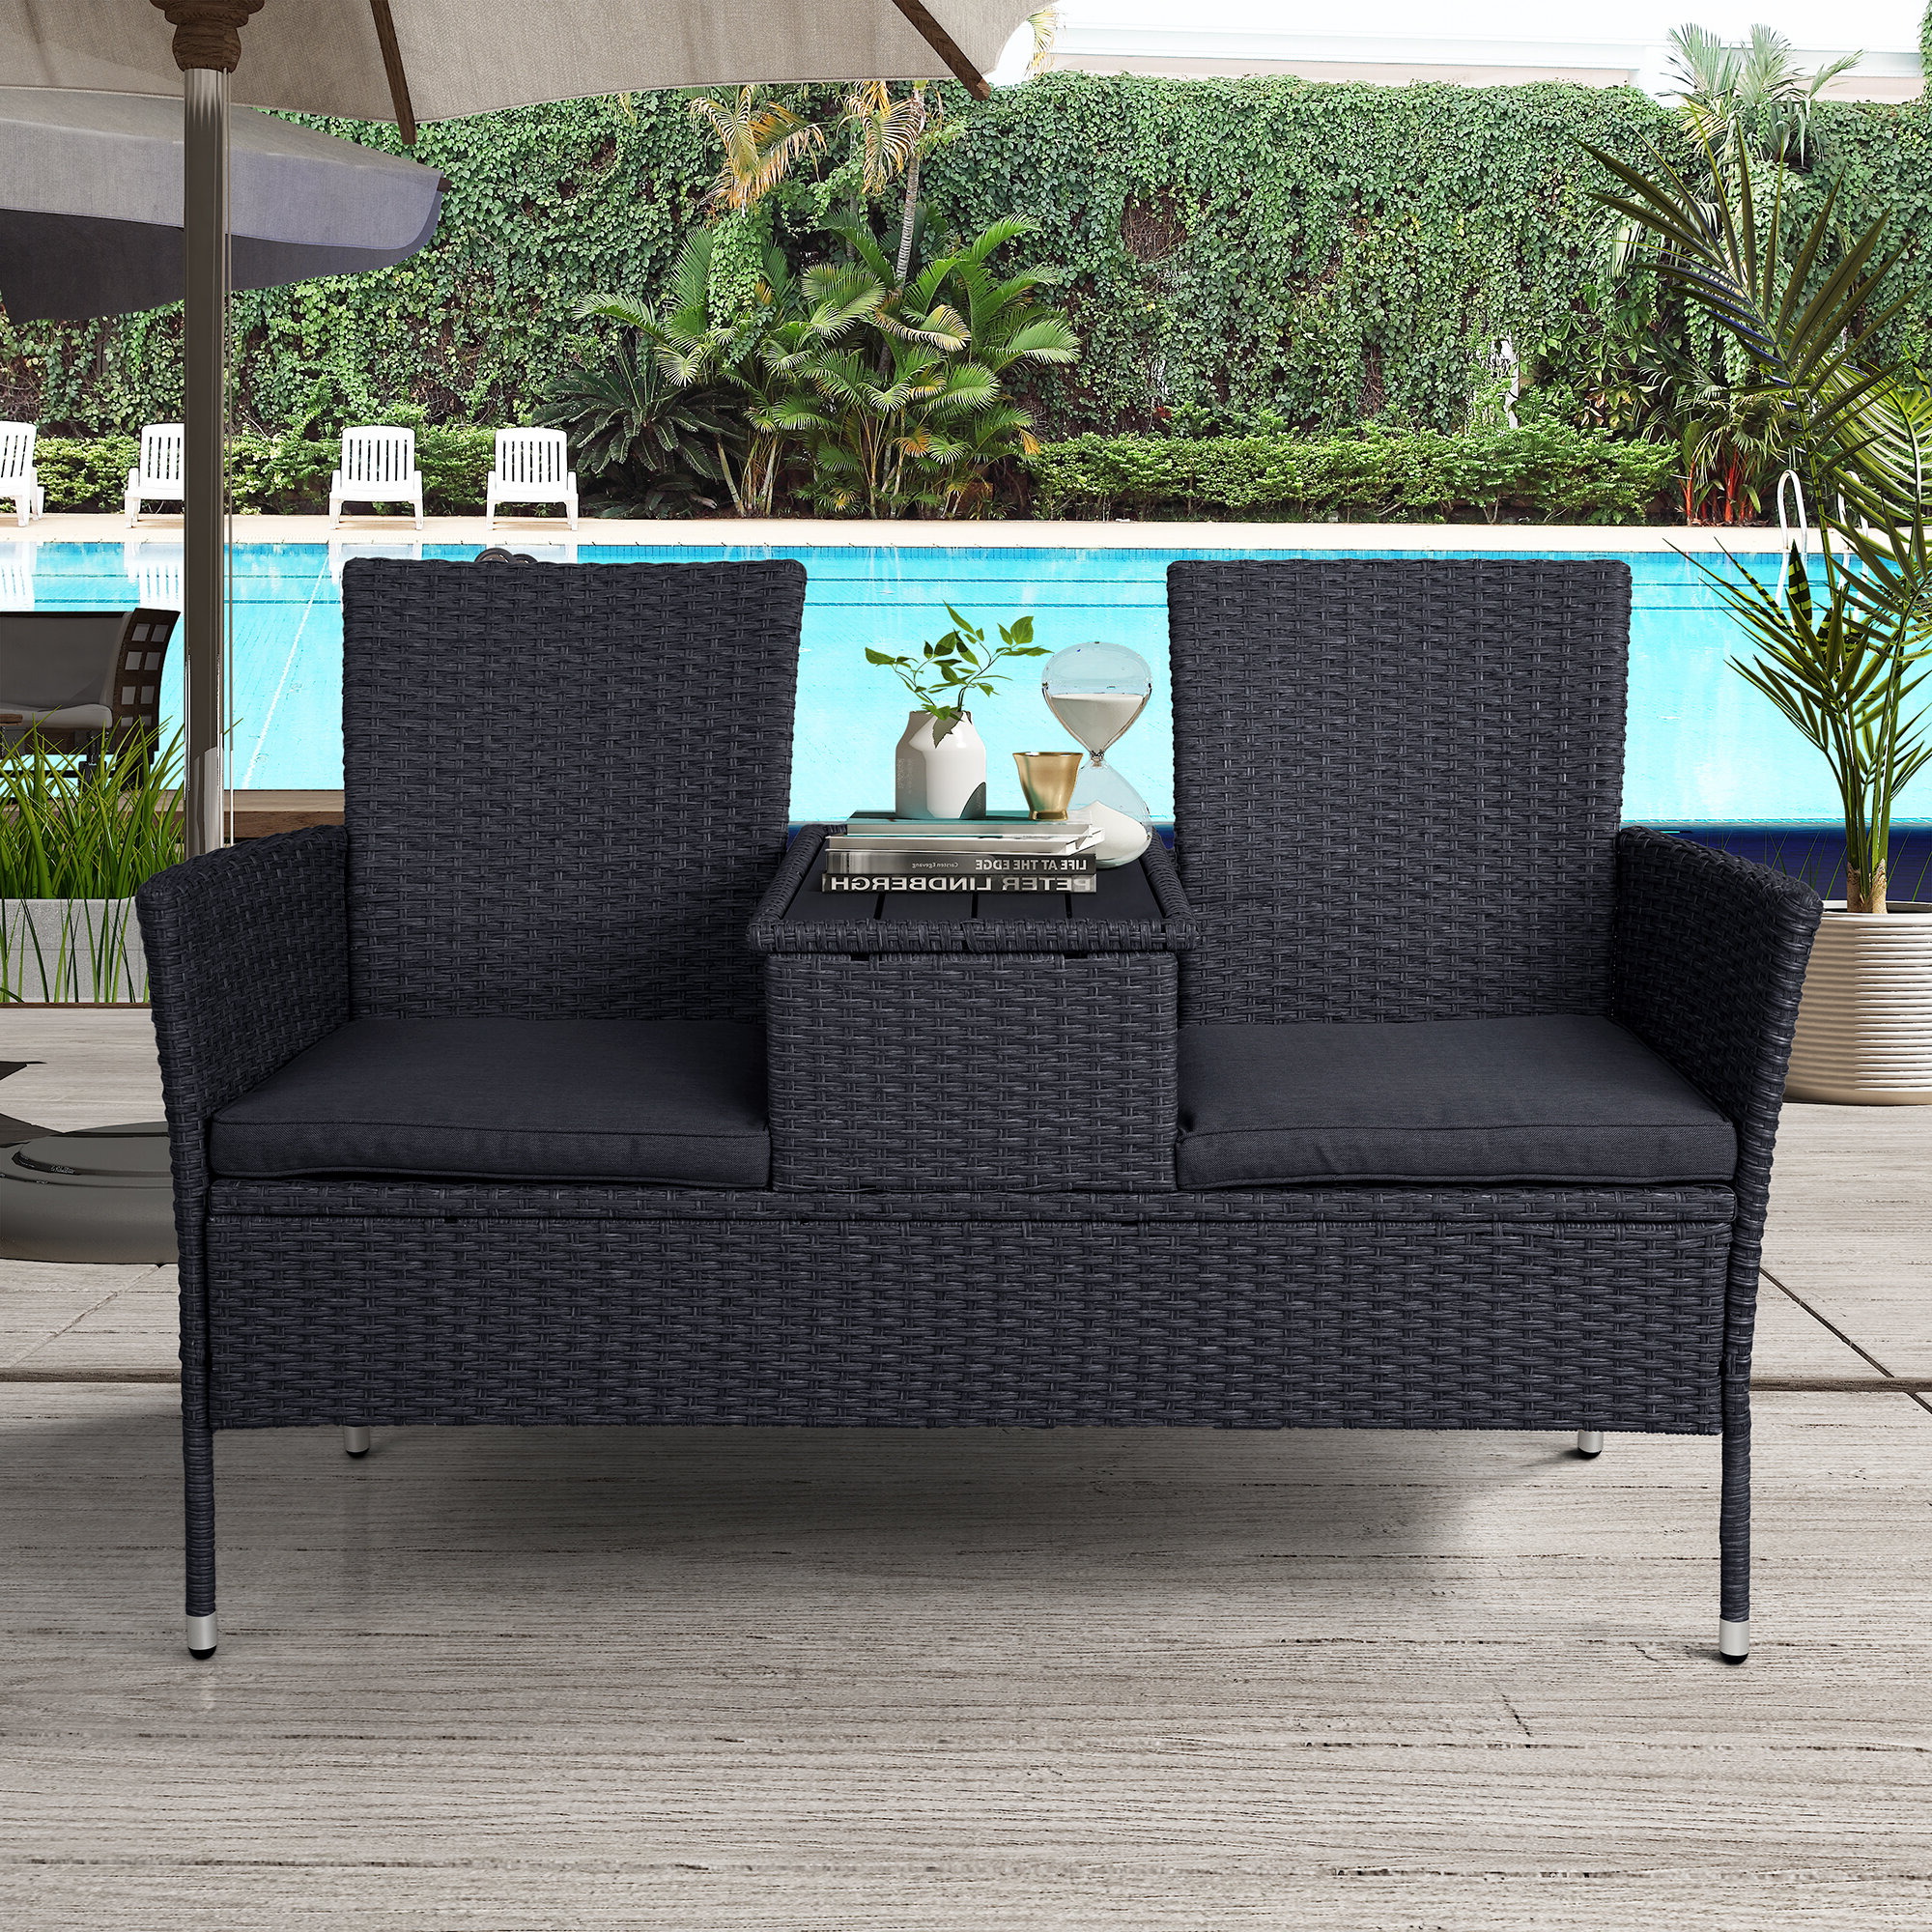 Most Recently Released Menoher Outdoor Loveseat With Cushions For Castelli Loveseats With Cushions (View 13 of 20)